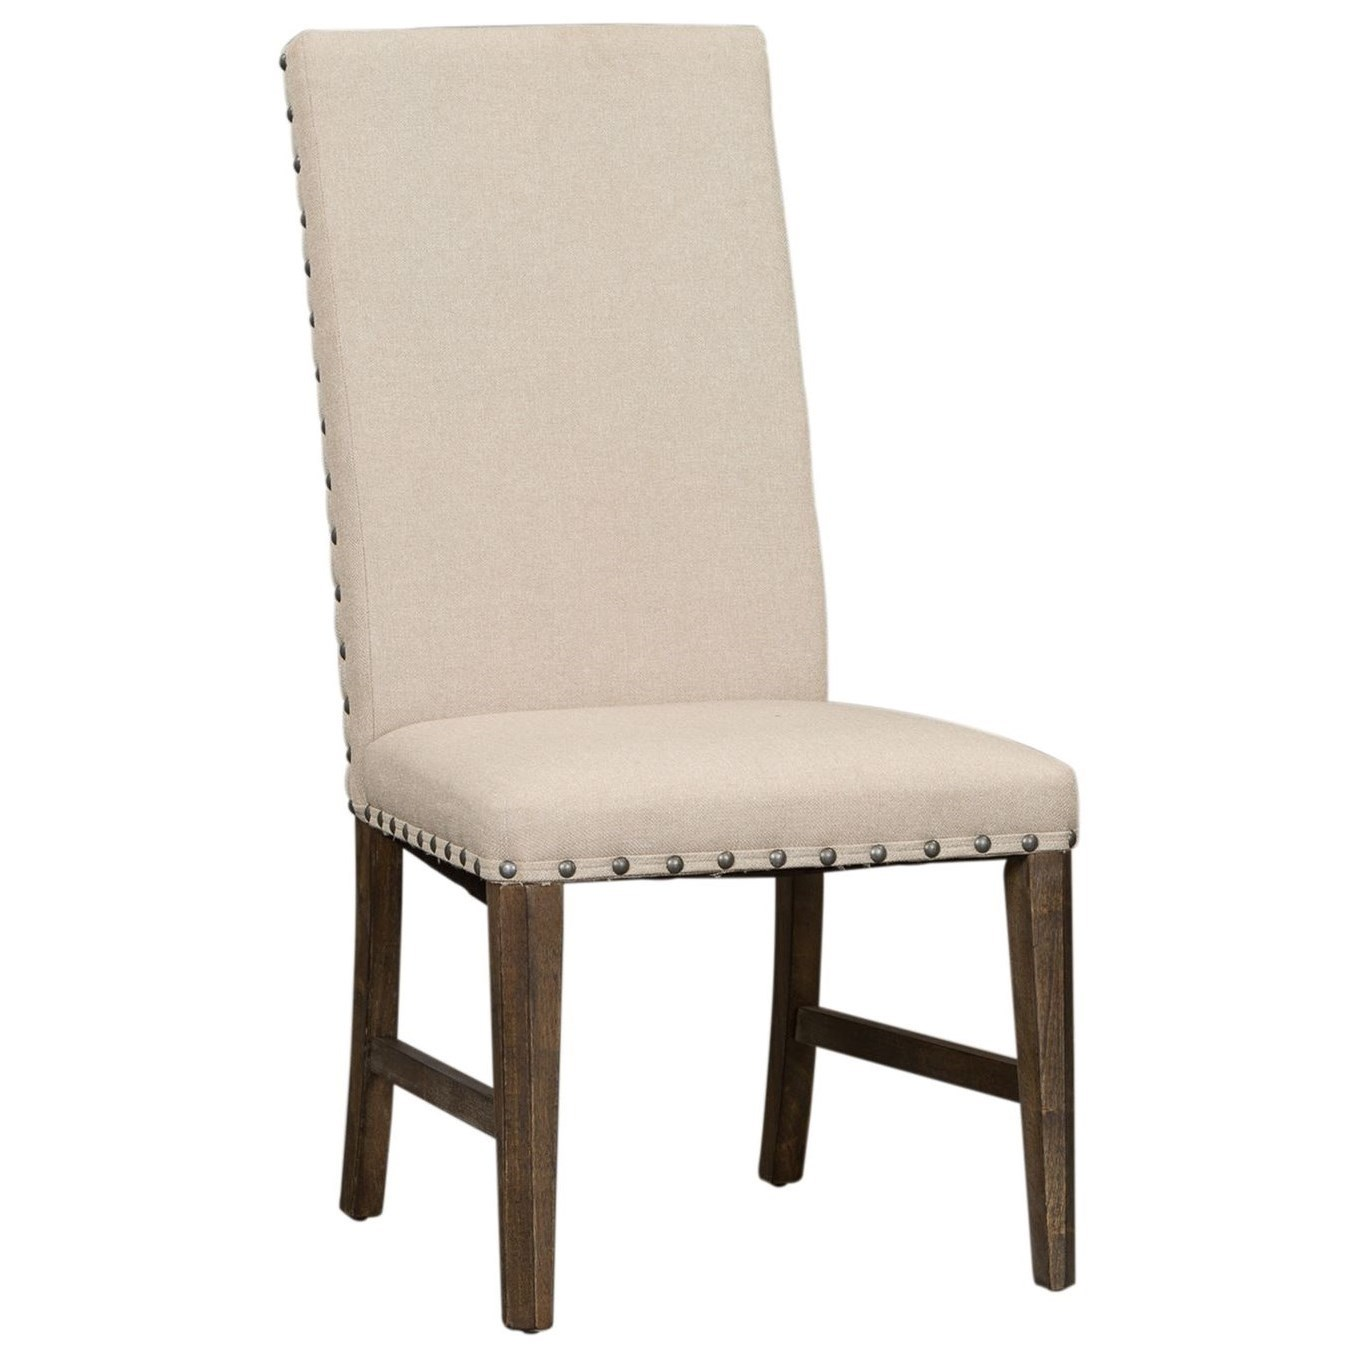 Artisan Prairie Upholstered Side Chair by Liberty Furniture at Furniture and ApplianceMart